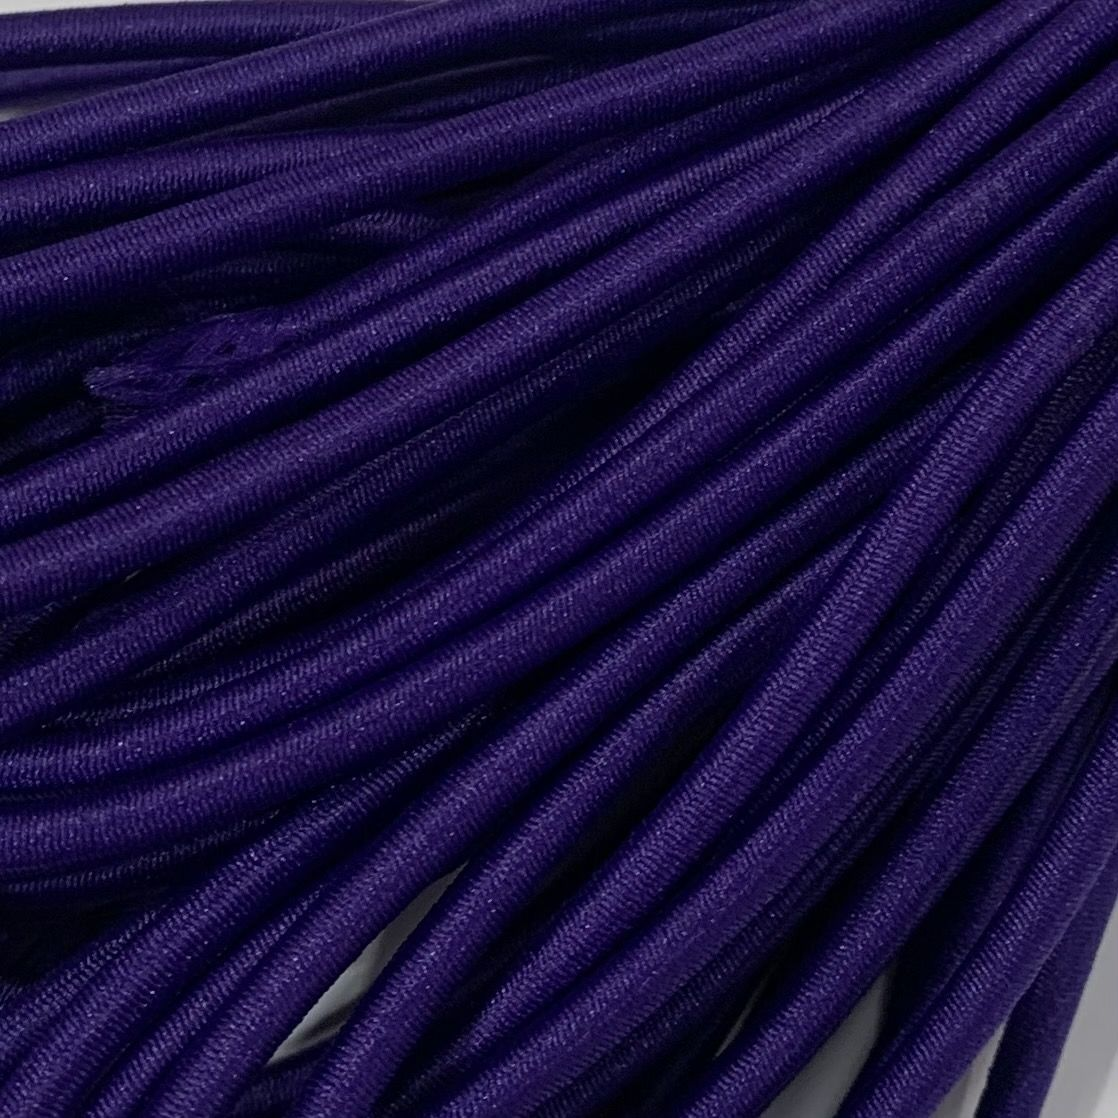 Round Elastic Cord - 3mm Wide - Violet